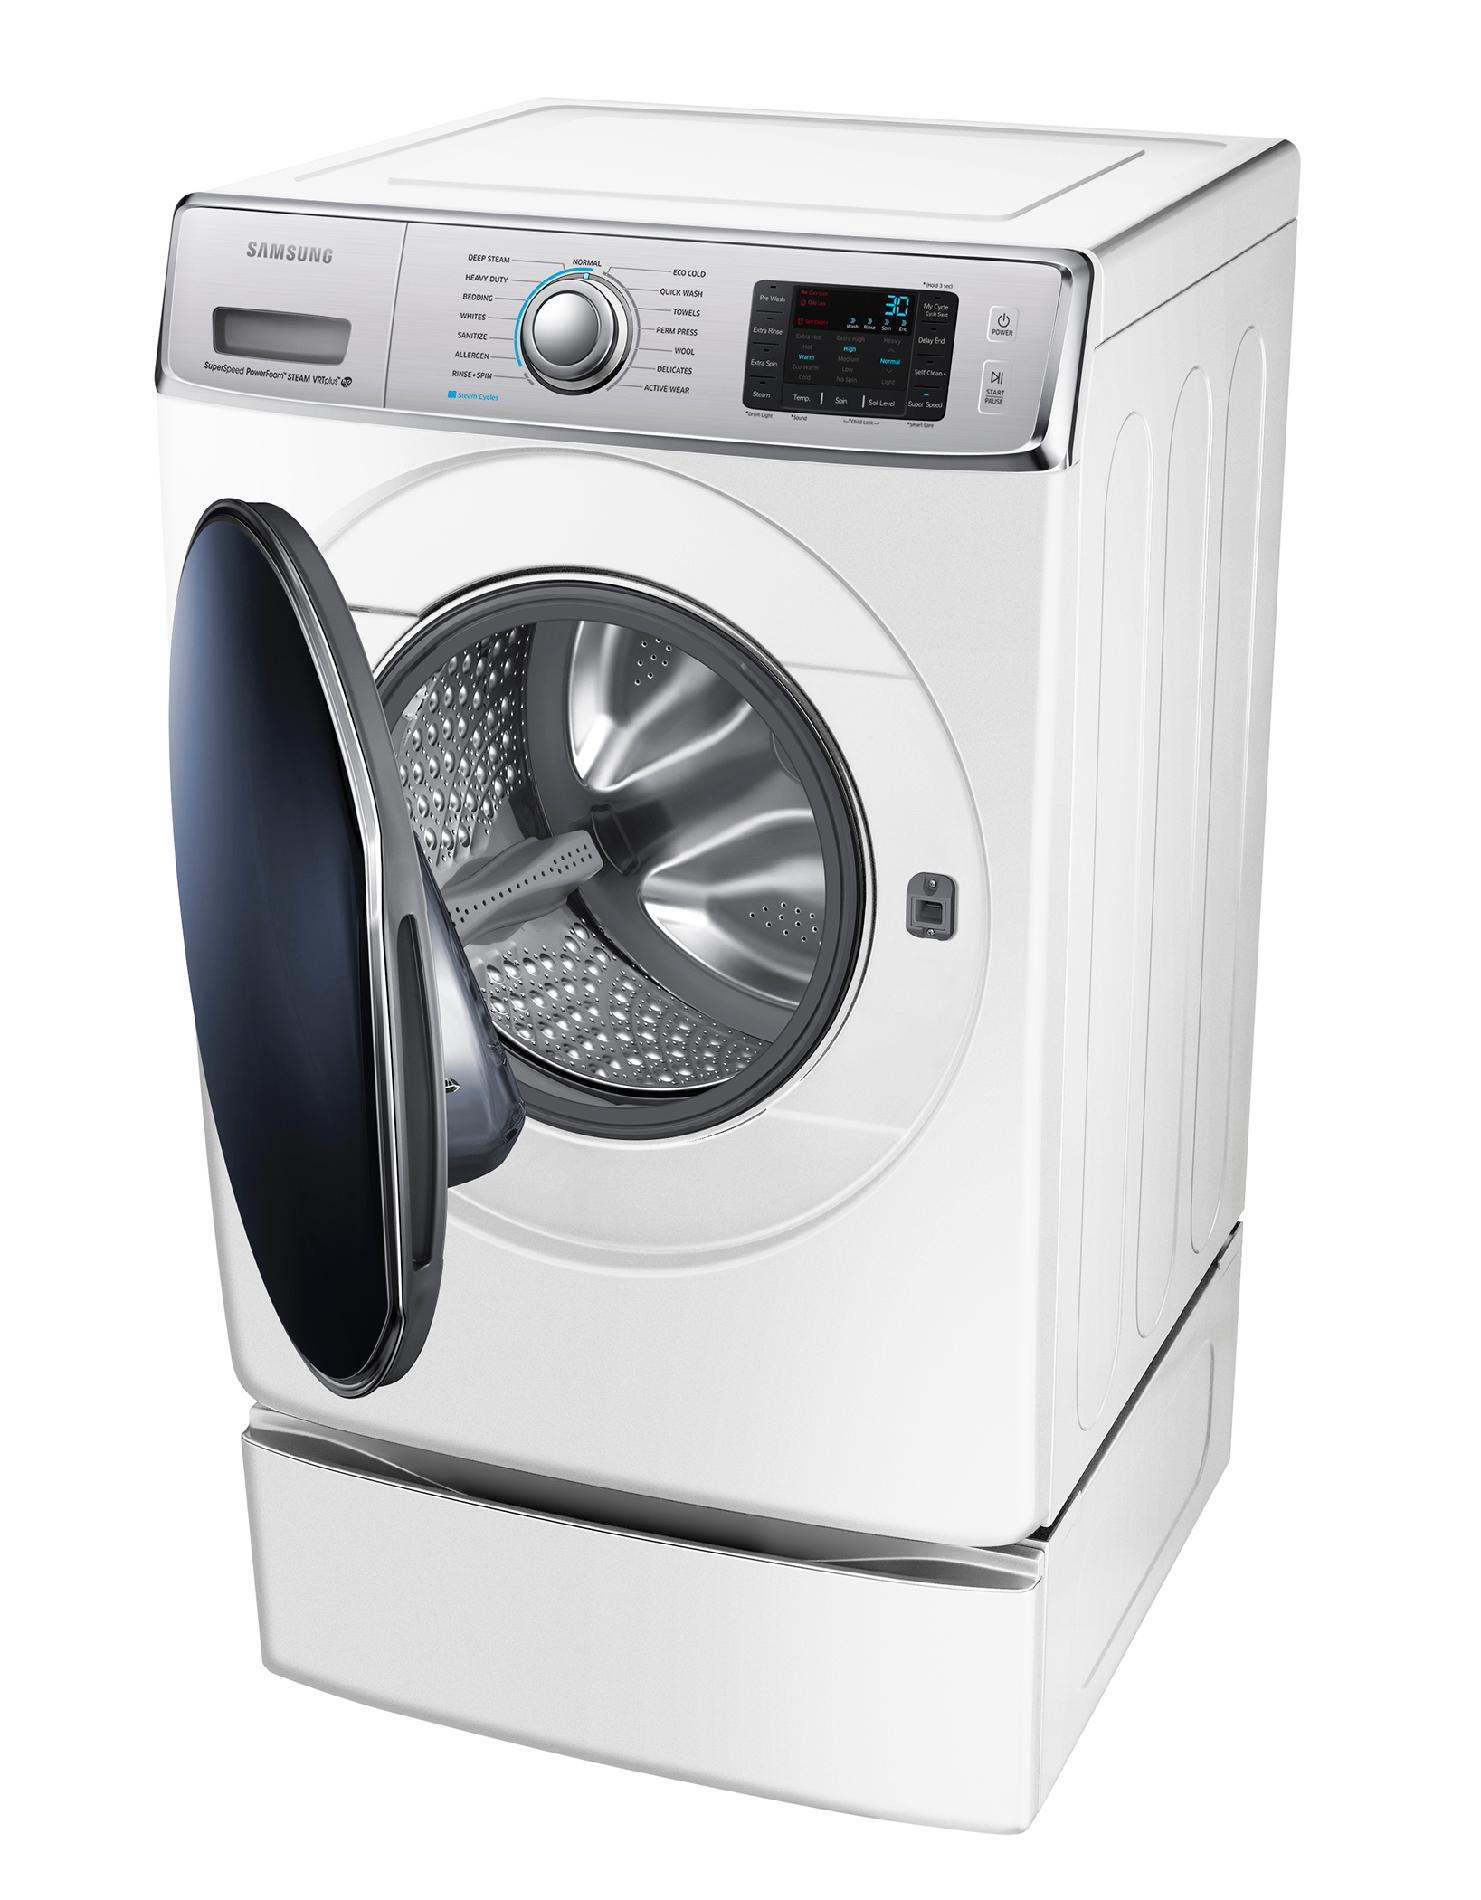 Samsung WF56H9100AW 5.6 cu. ft. Front-Load Washer - White